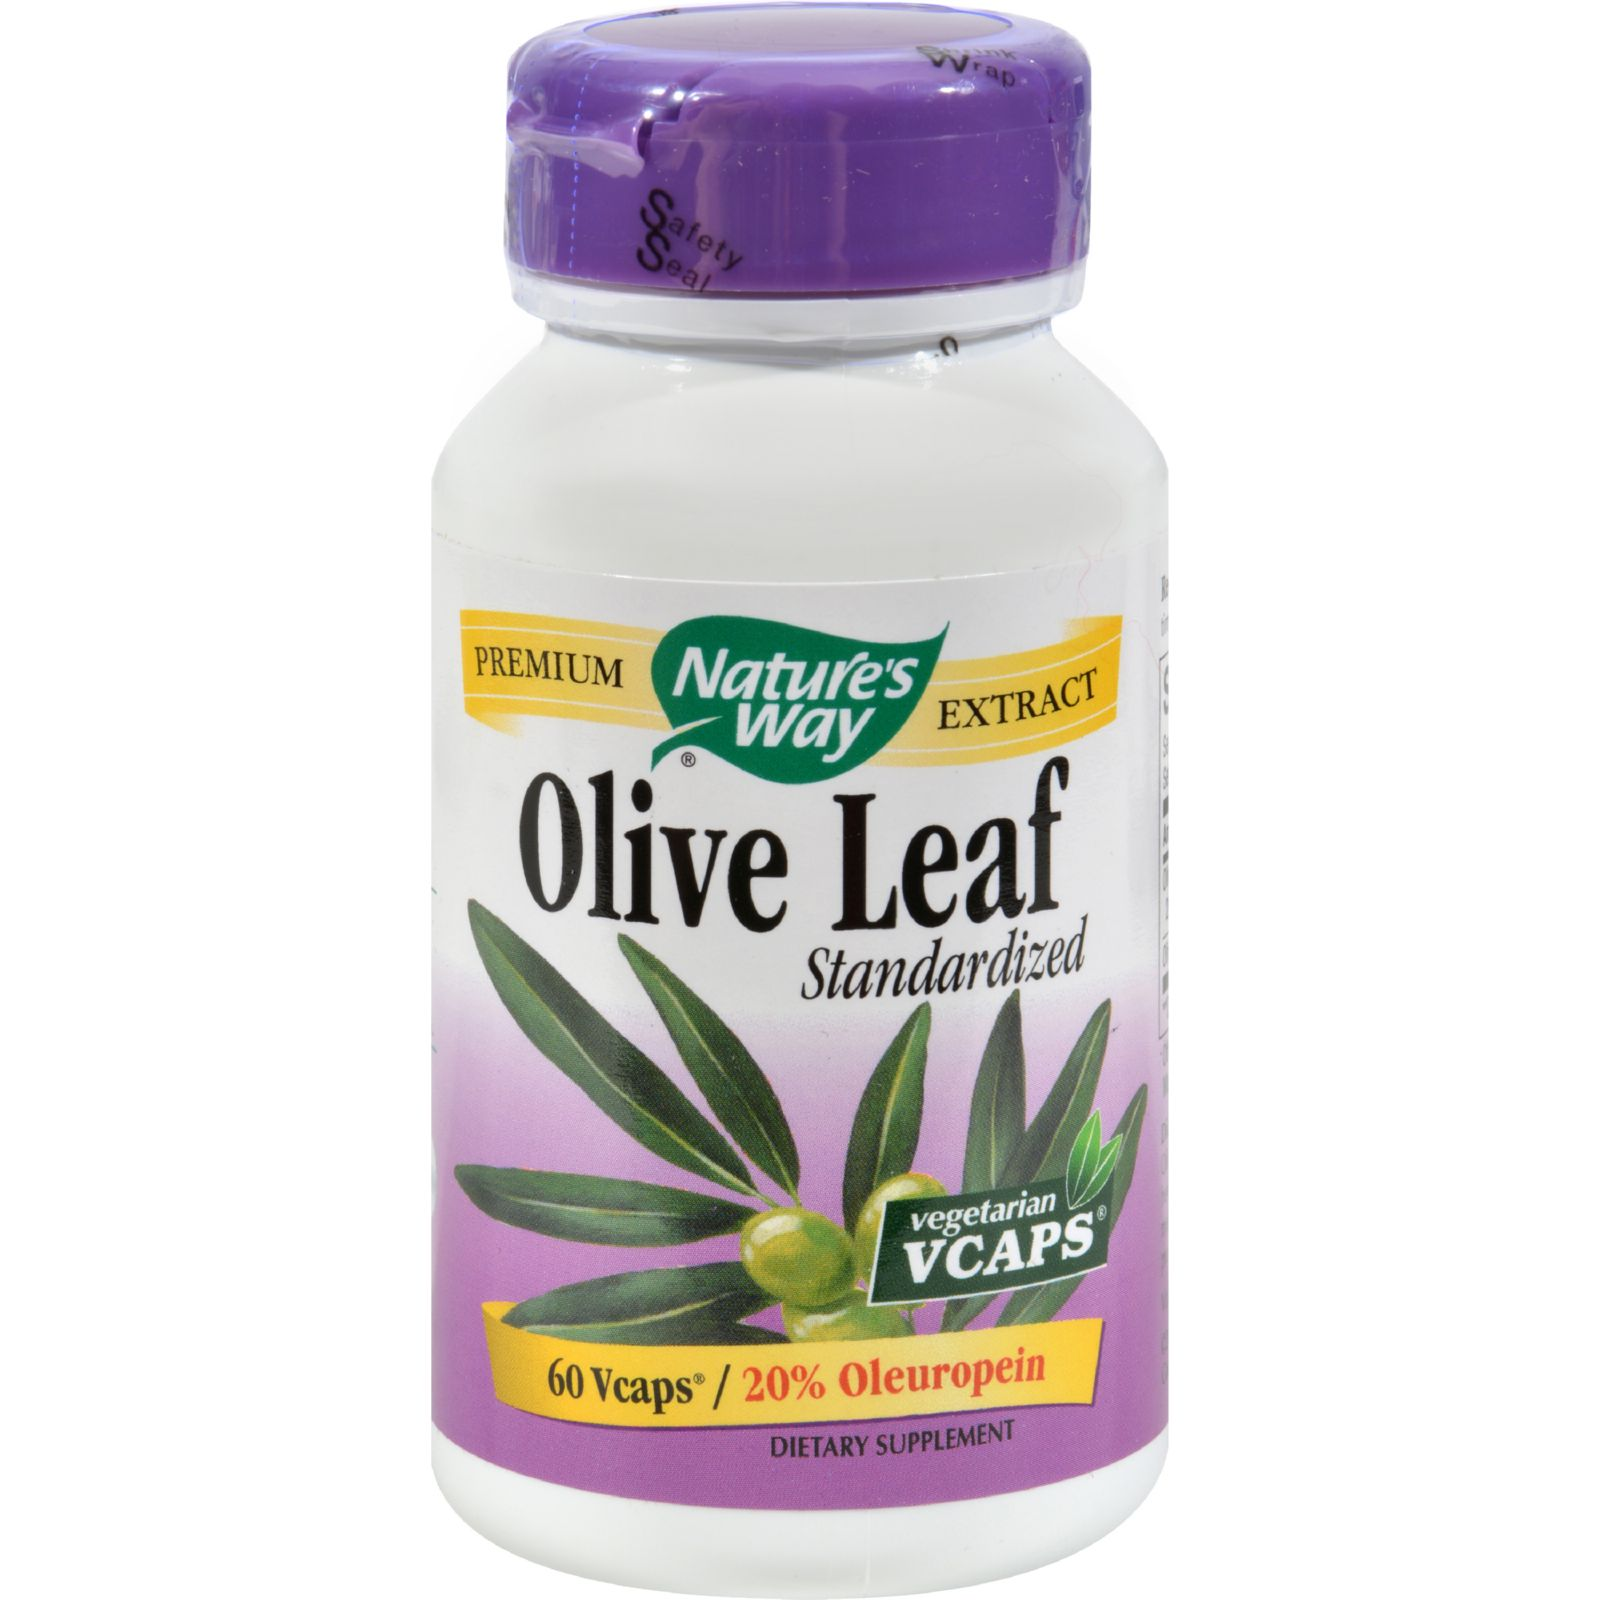 Nature's Way Olive Leaf Standardized 20% Oleuropein - 60 Vegetarian Capsules